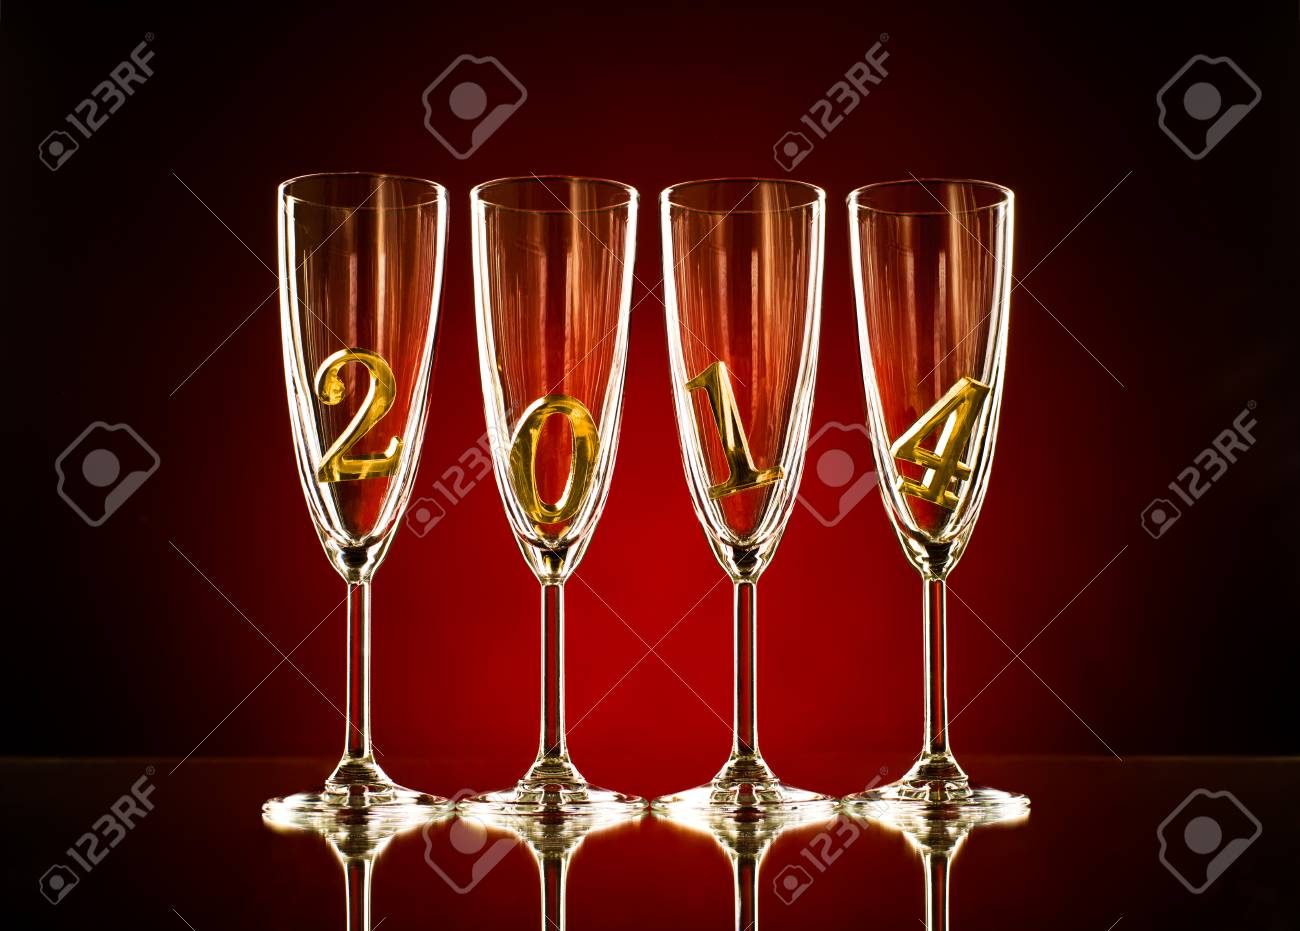 four glass goblet for champagne with  numeral 2014,  beautiful celebrations  New Year concept photo Stock Photo - 22960832